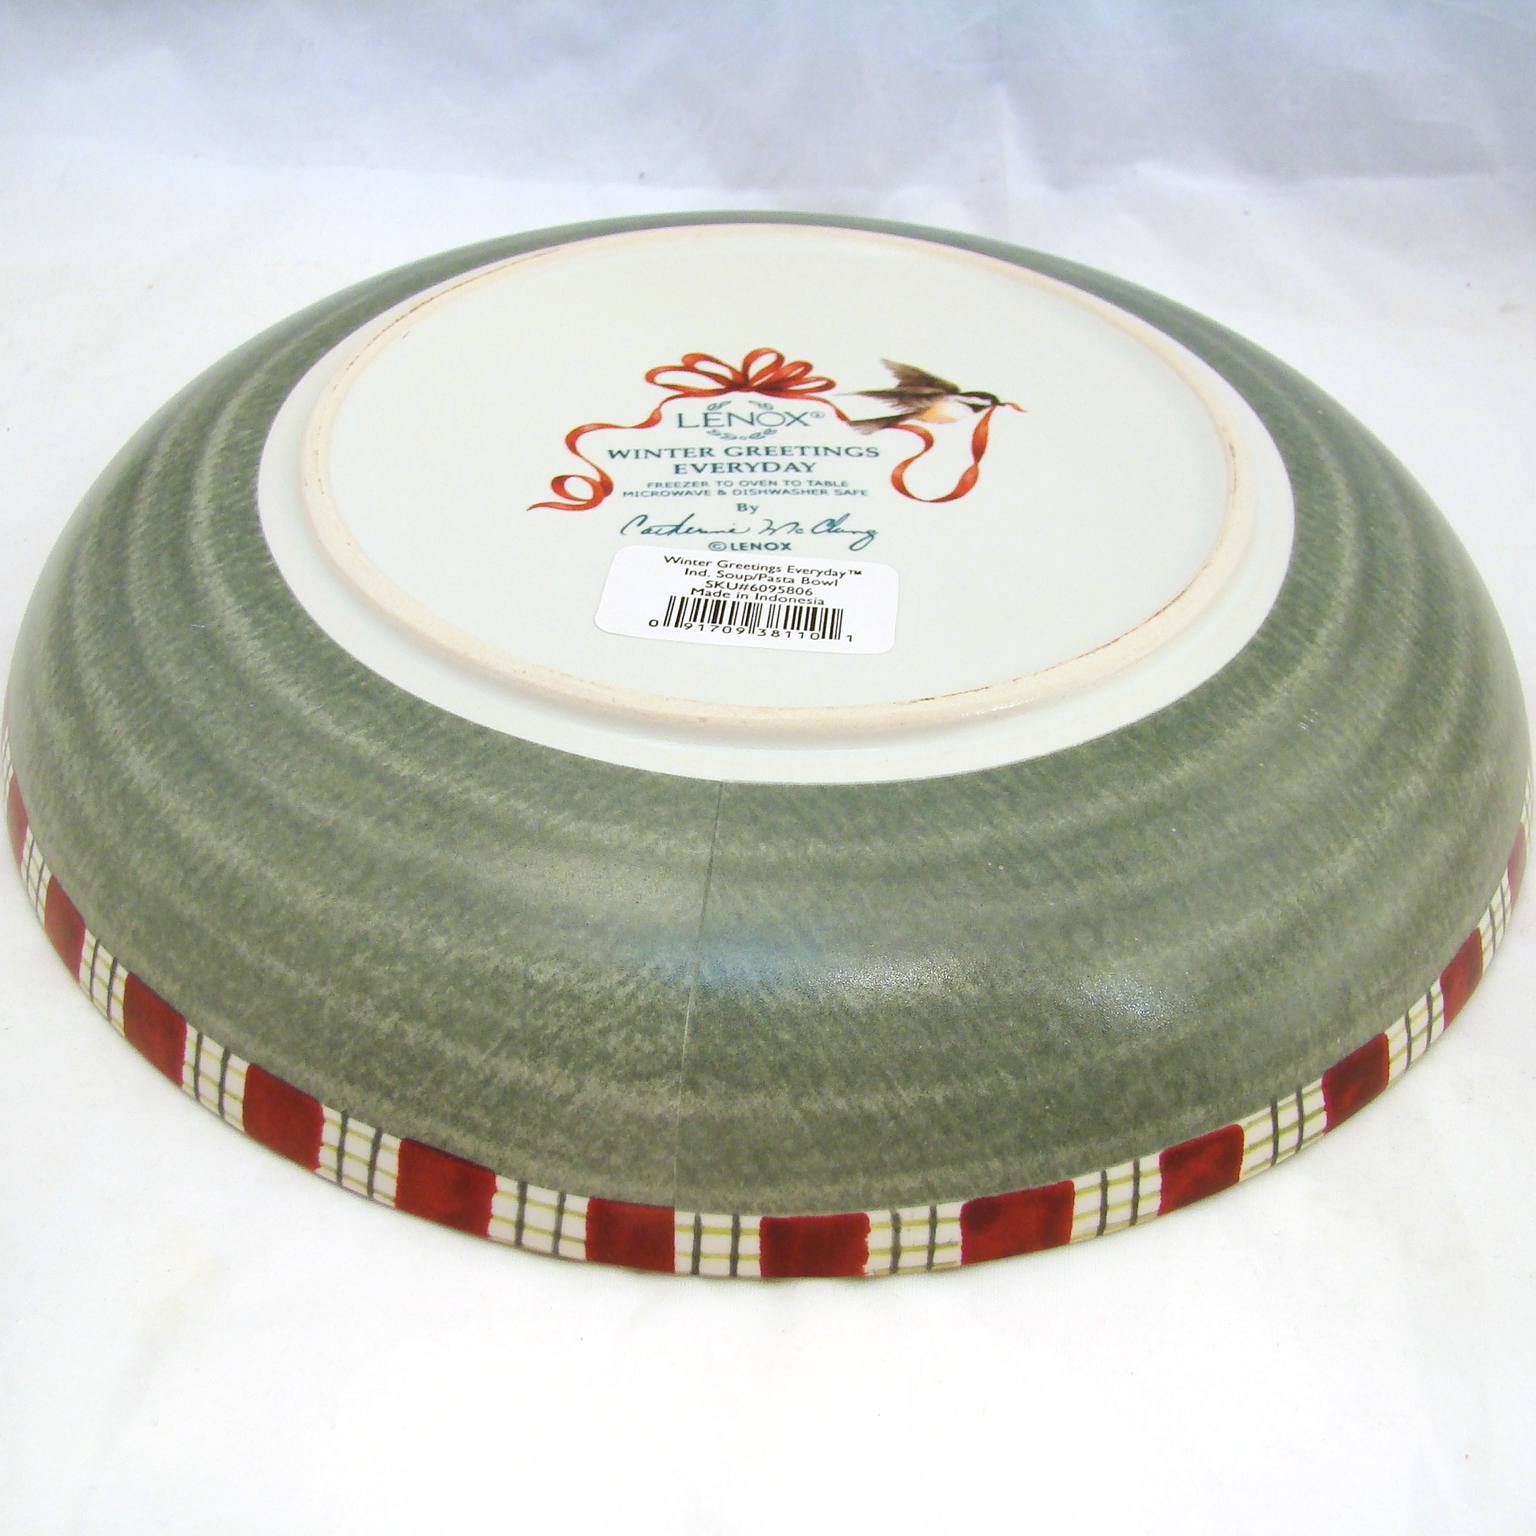 Lenox winter greetings everyday individual souppasta bowls 9 38 condition notes new with sticker kristyandbryce Choice Image